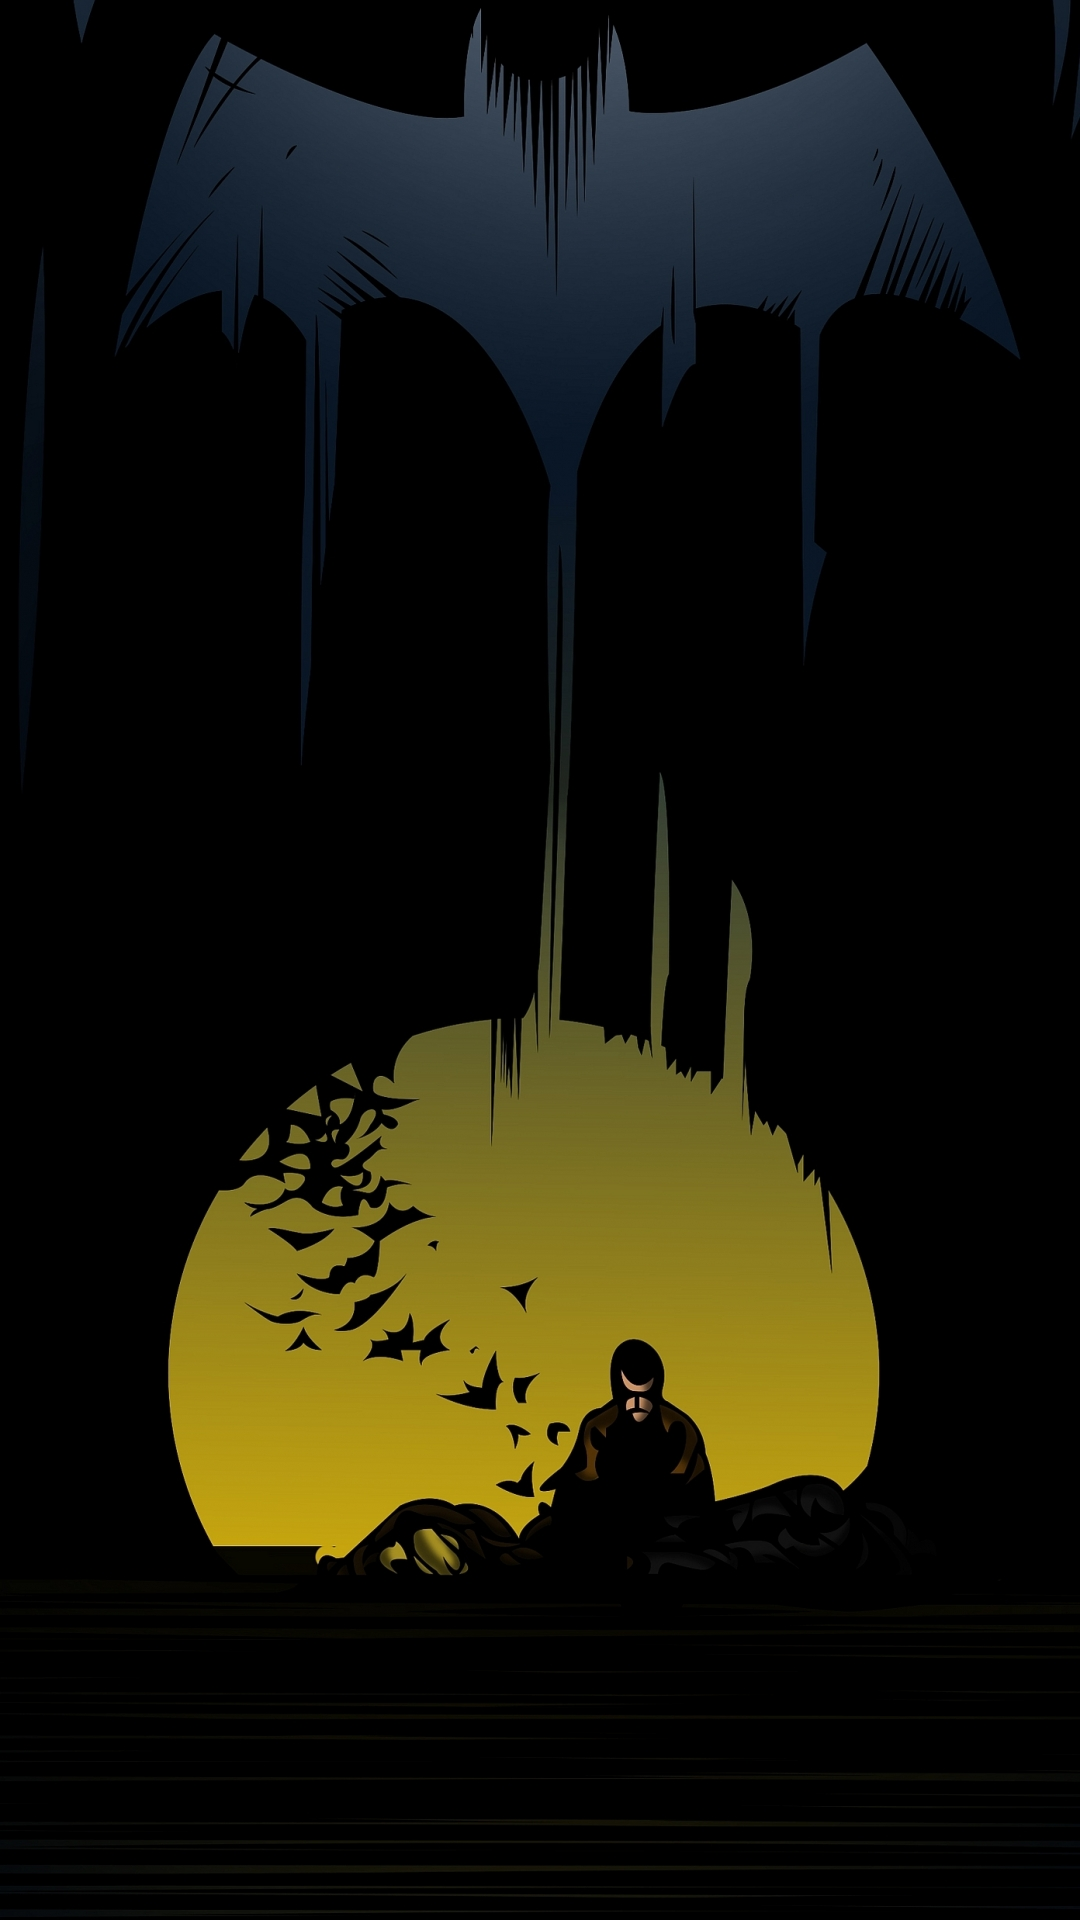 Batman comic iphone wallpaper